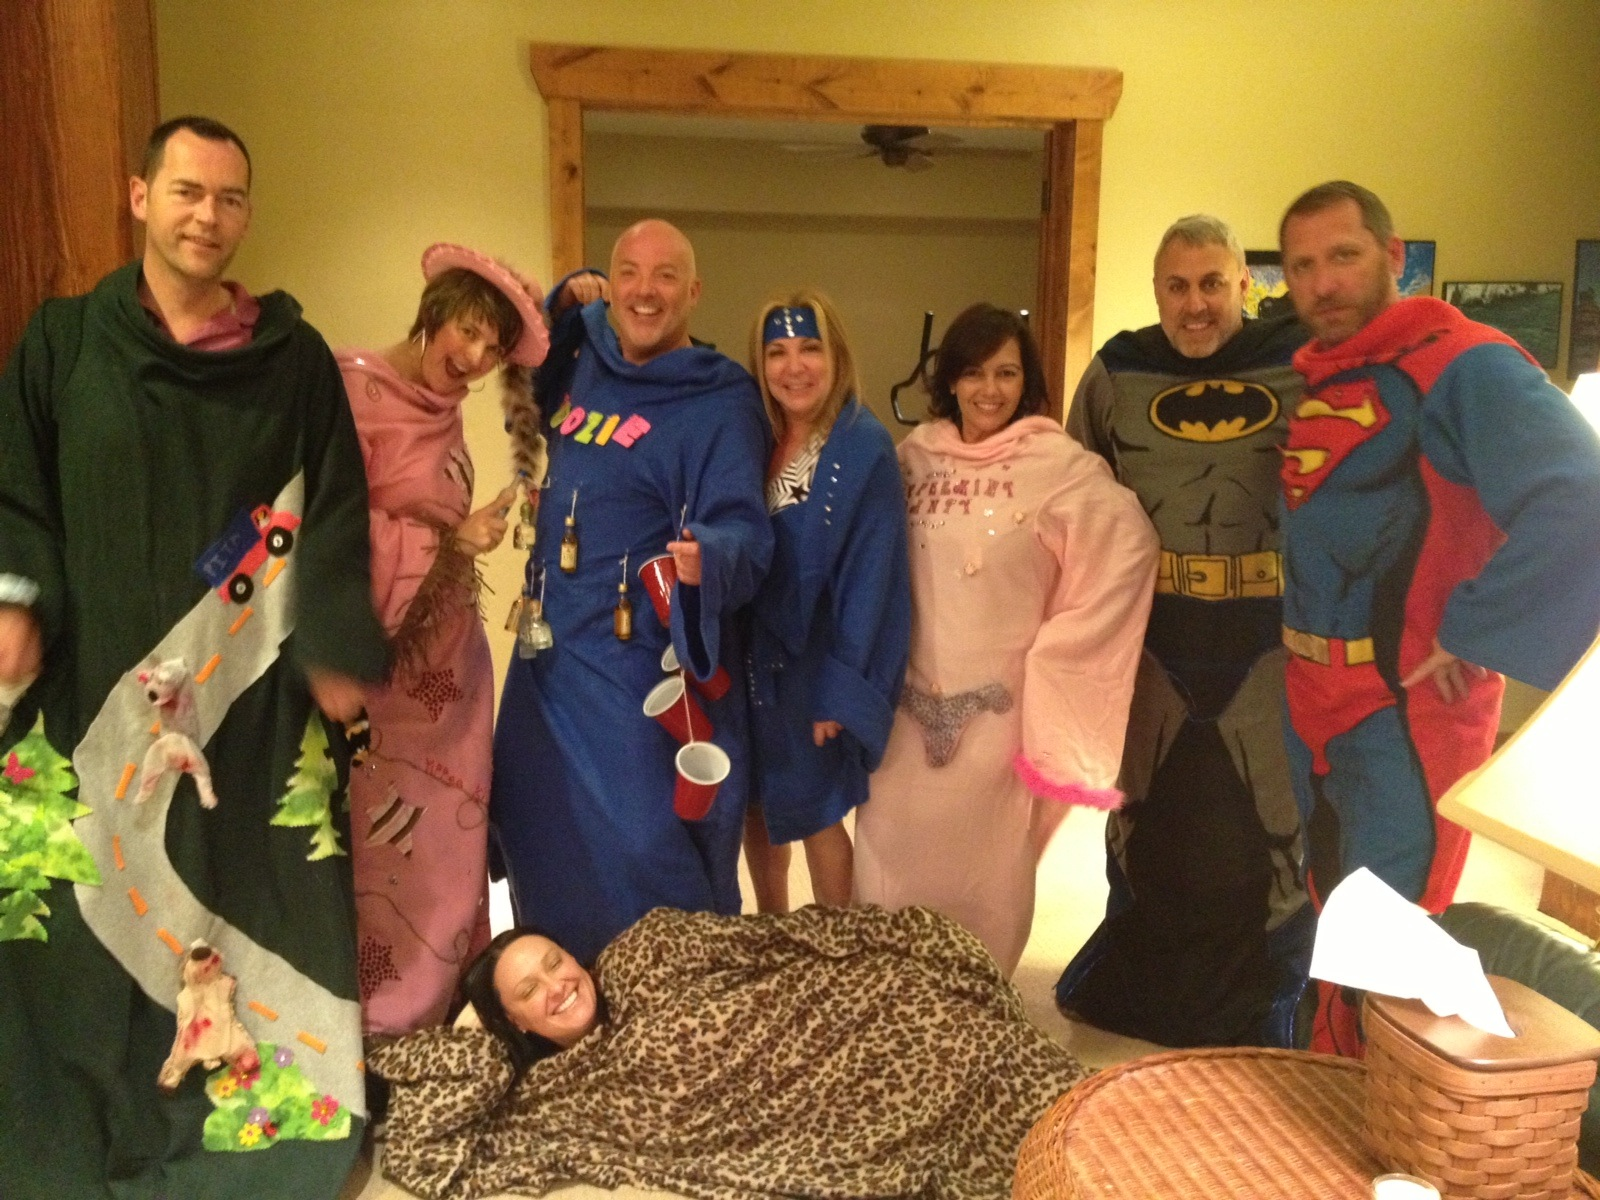 Snuggie Competition!